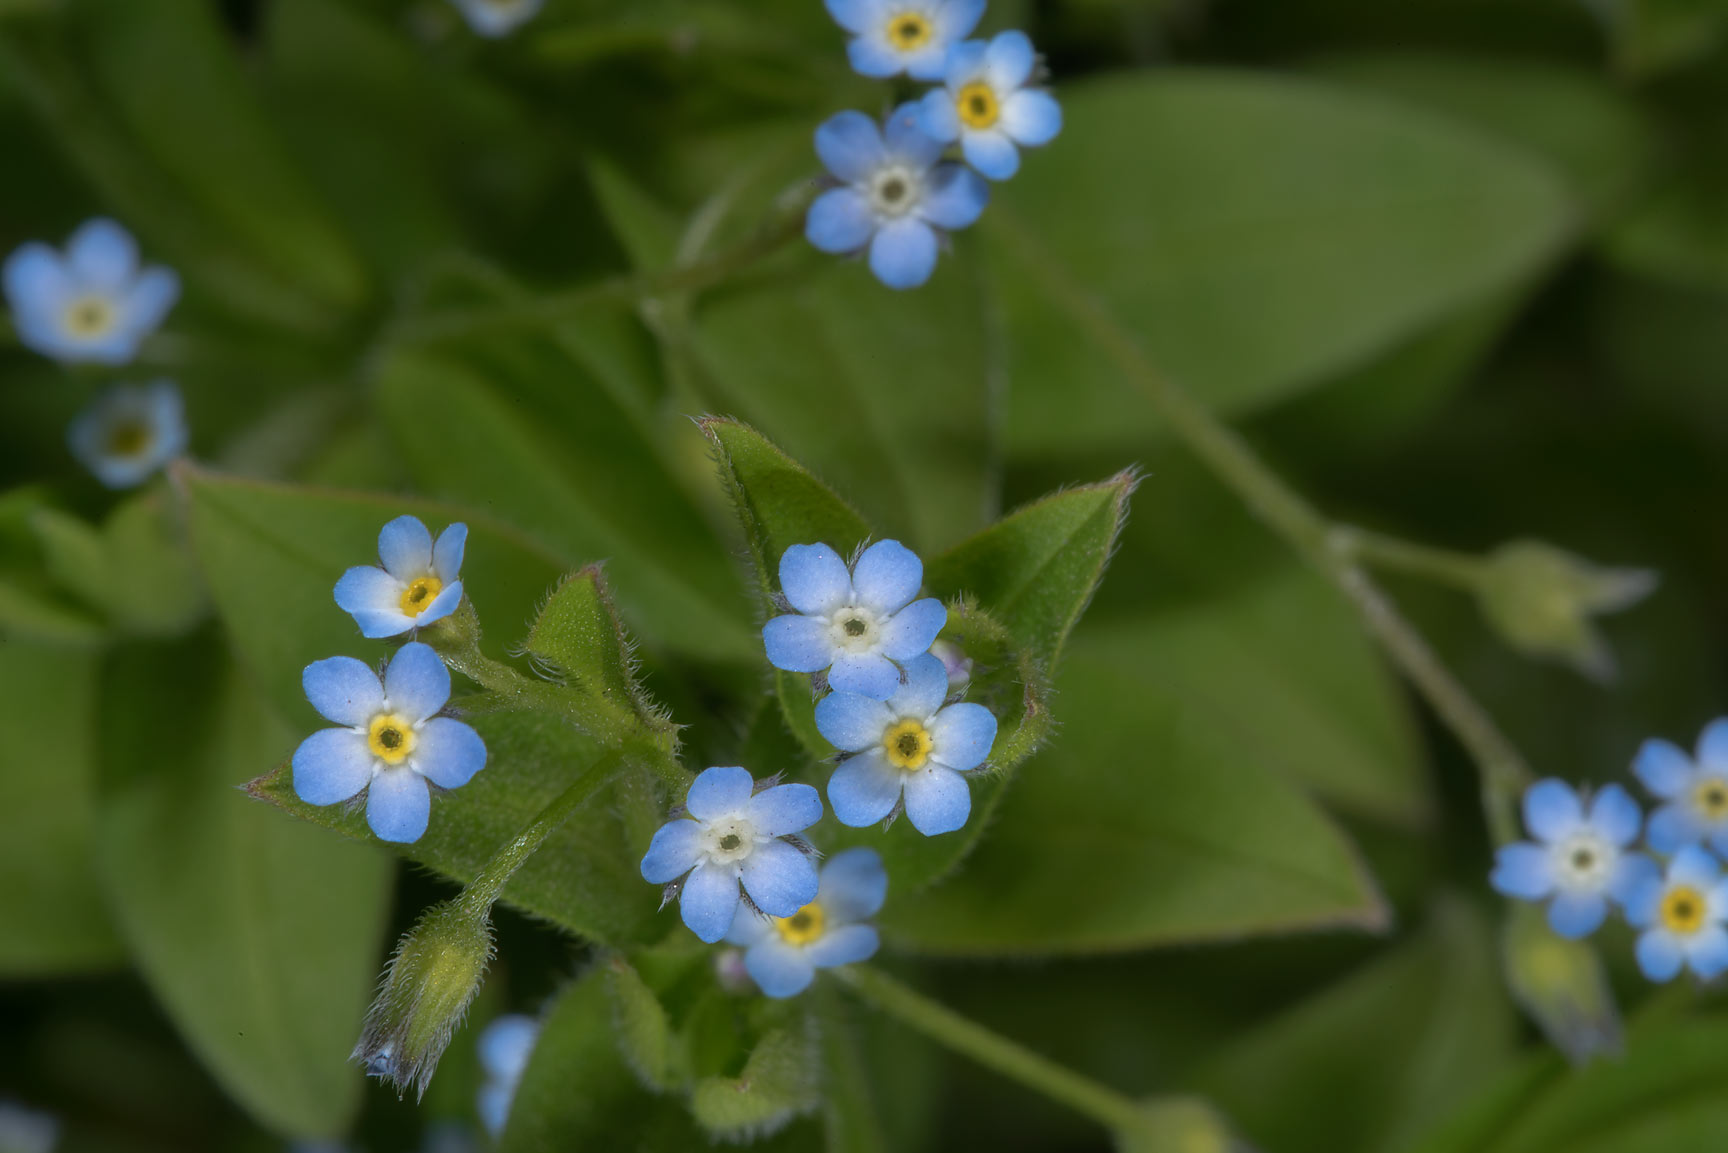 Small blue flowers of forget-me-not (Myosotis) in...Institute. St.Petersburg, Russia